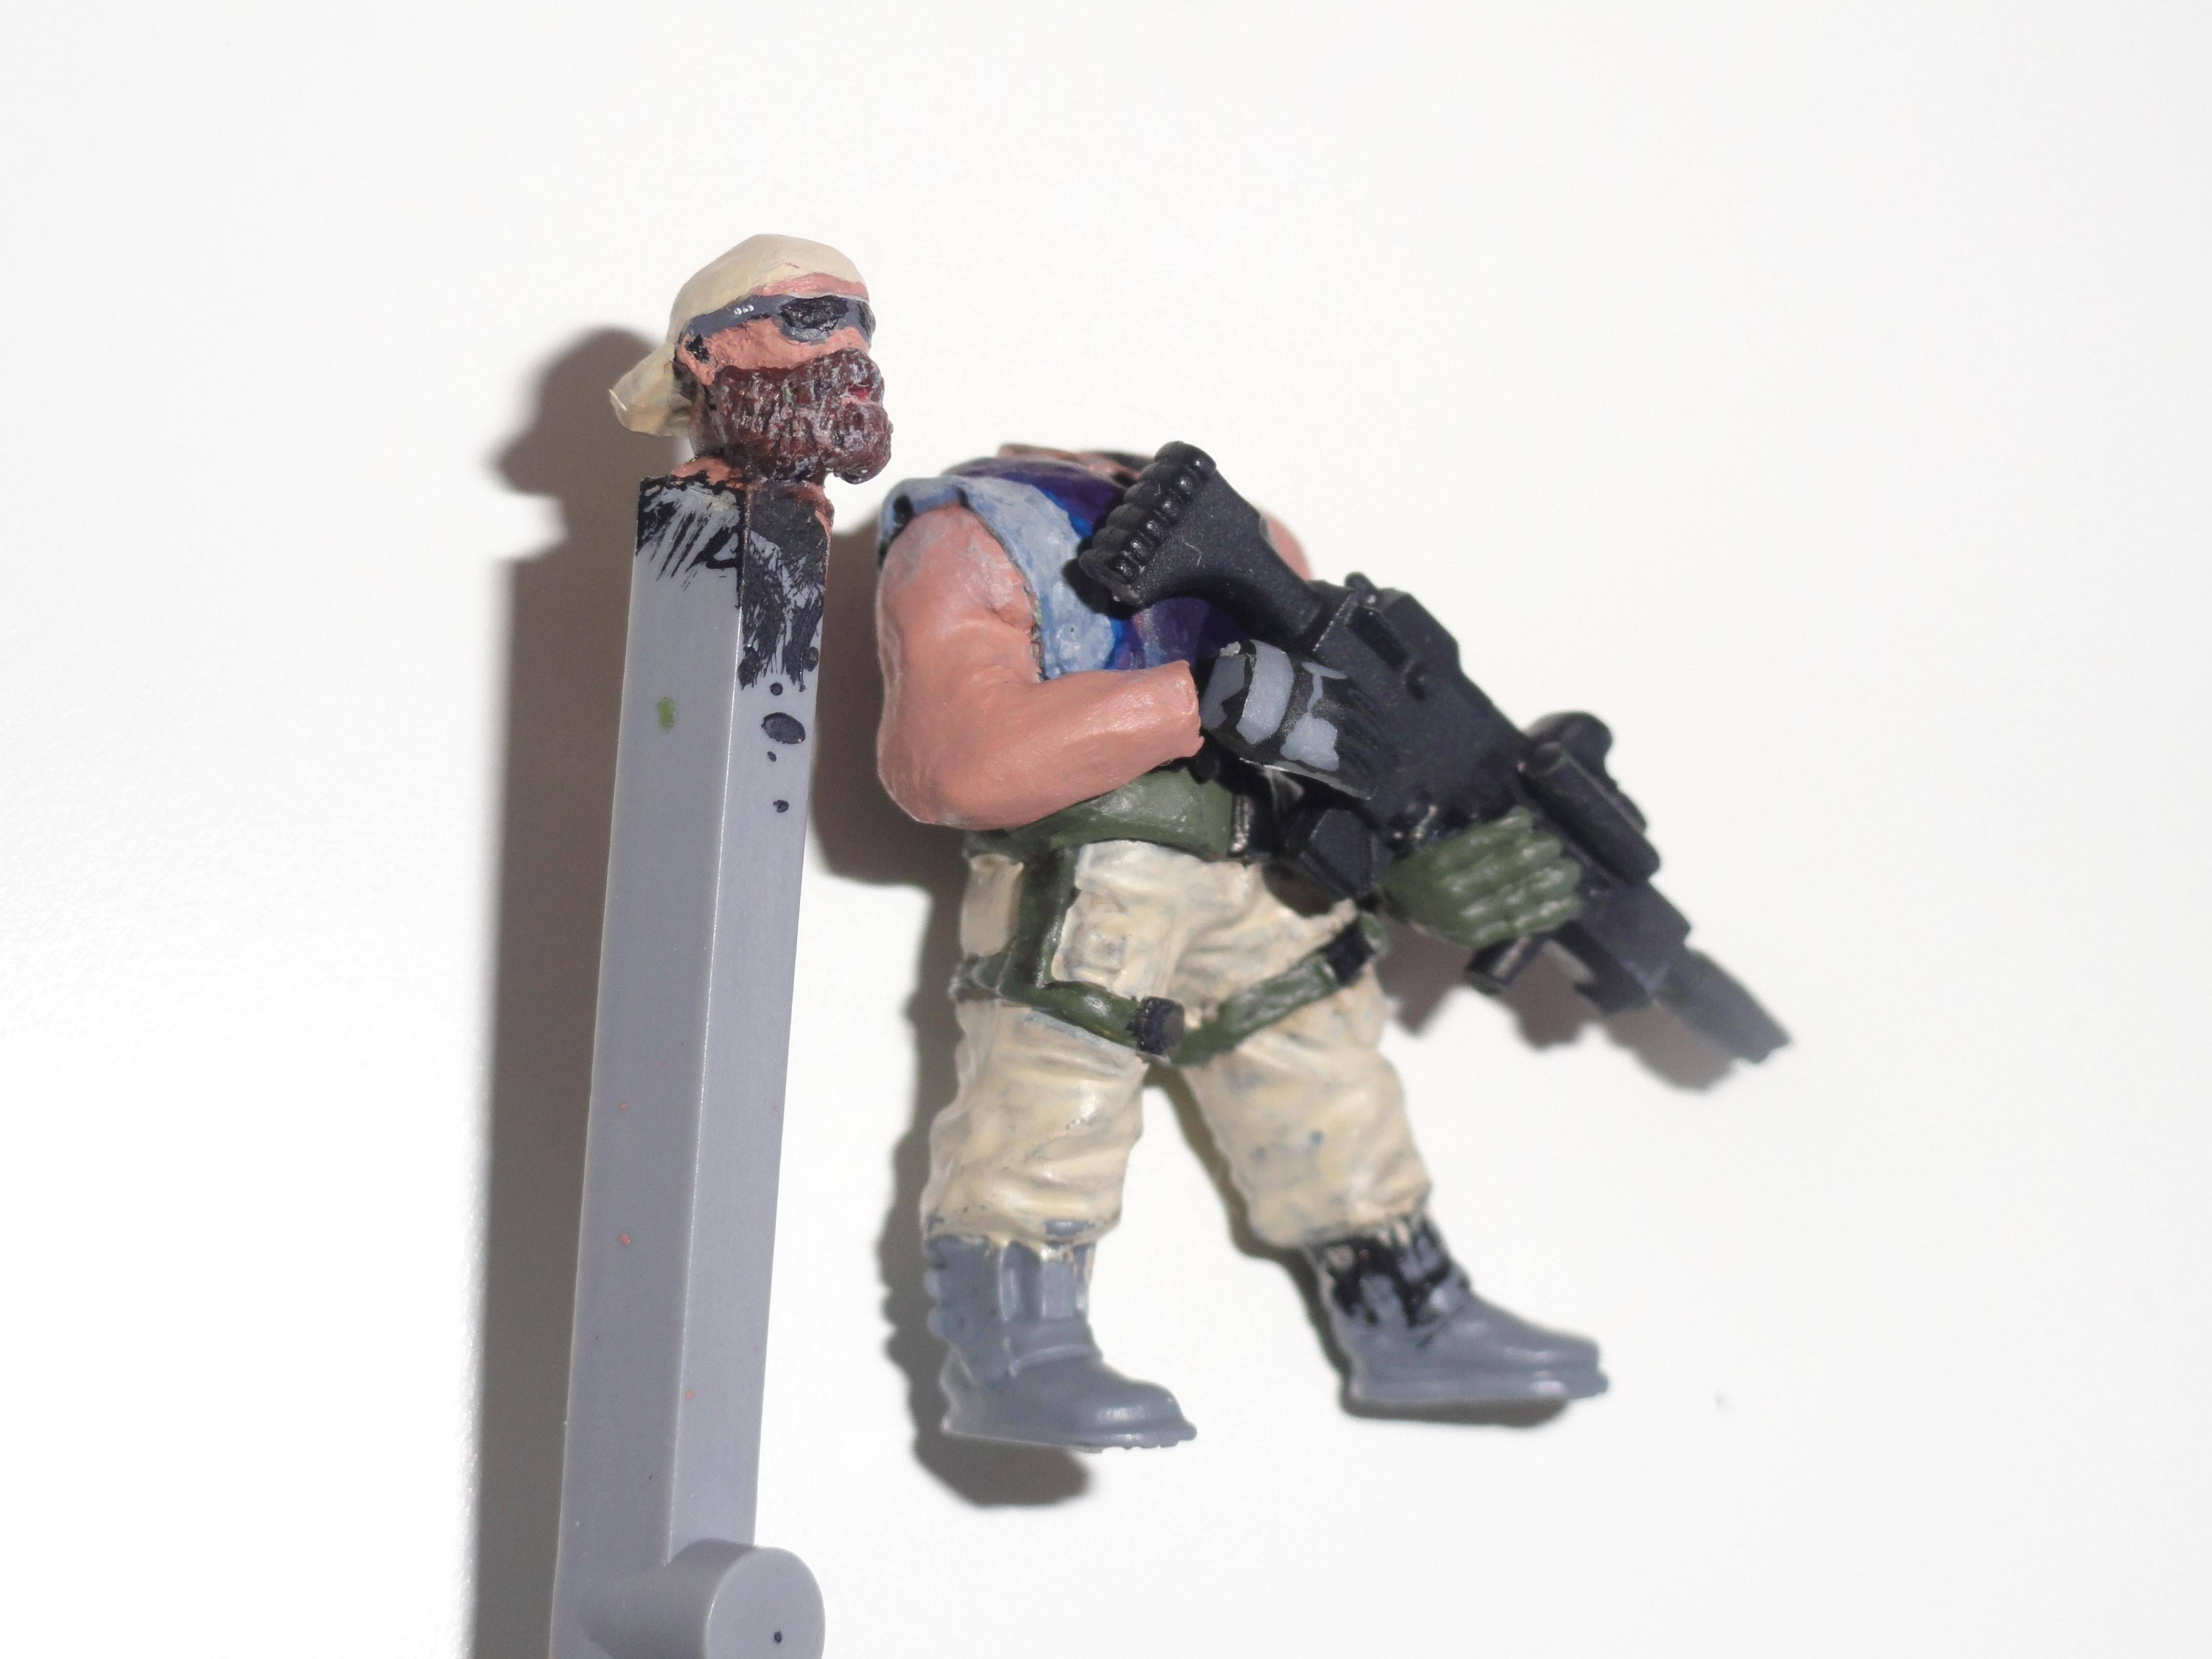 Beard, Cadians, Cap, Conversion, Customize, Imperial Guard, Infantry, Operator, Rifleman, Soldier, Special Forces, Sunglasses, Veteran, Warhammer 40,000